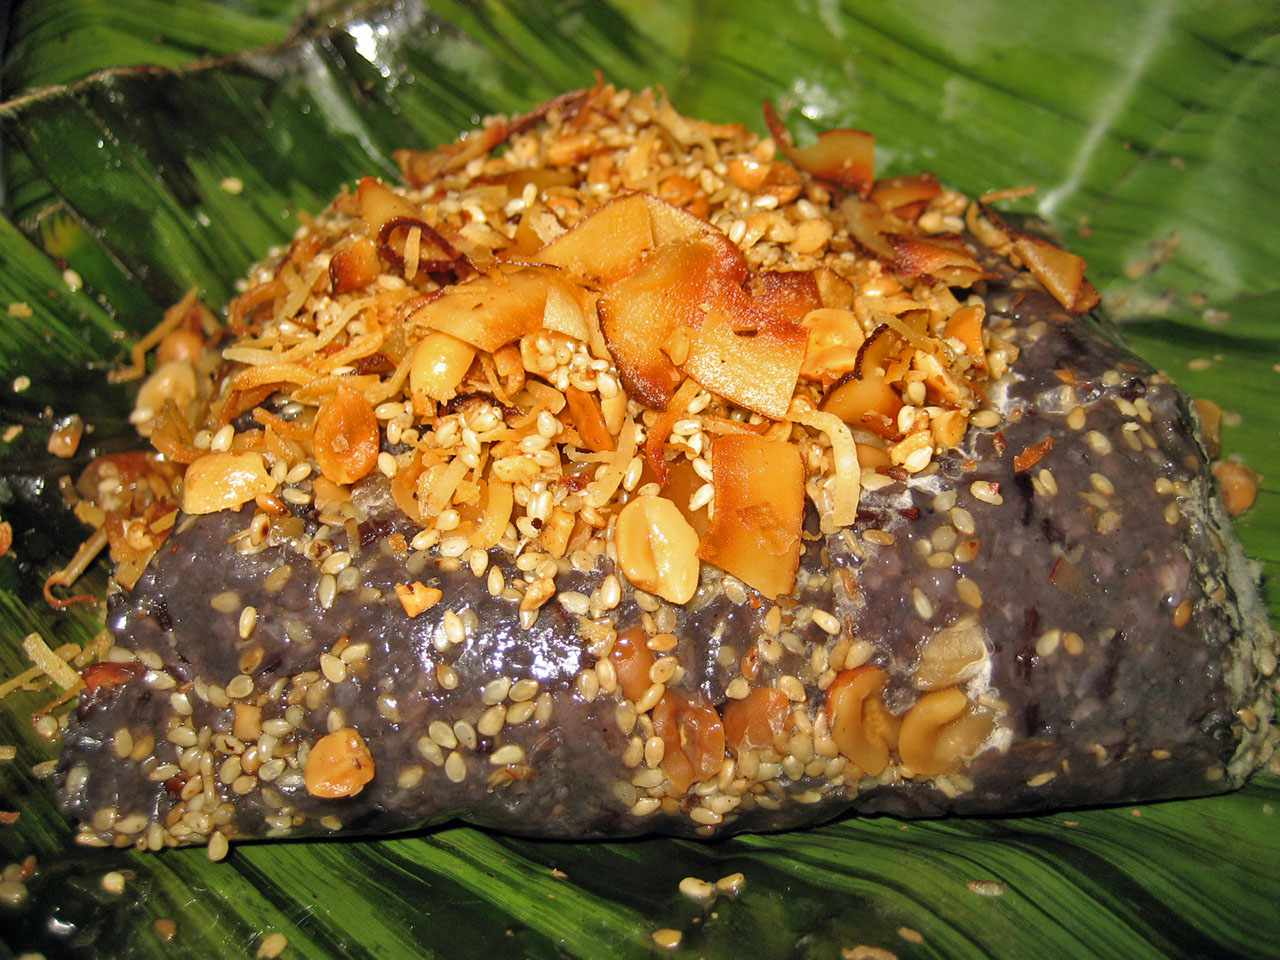 sweet rice ball with toasted nuts and seeds